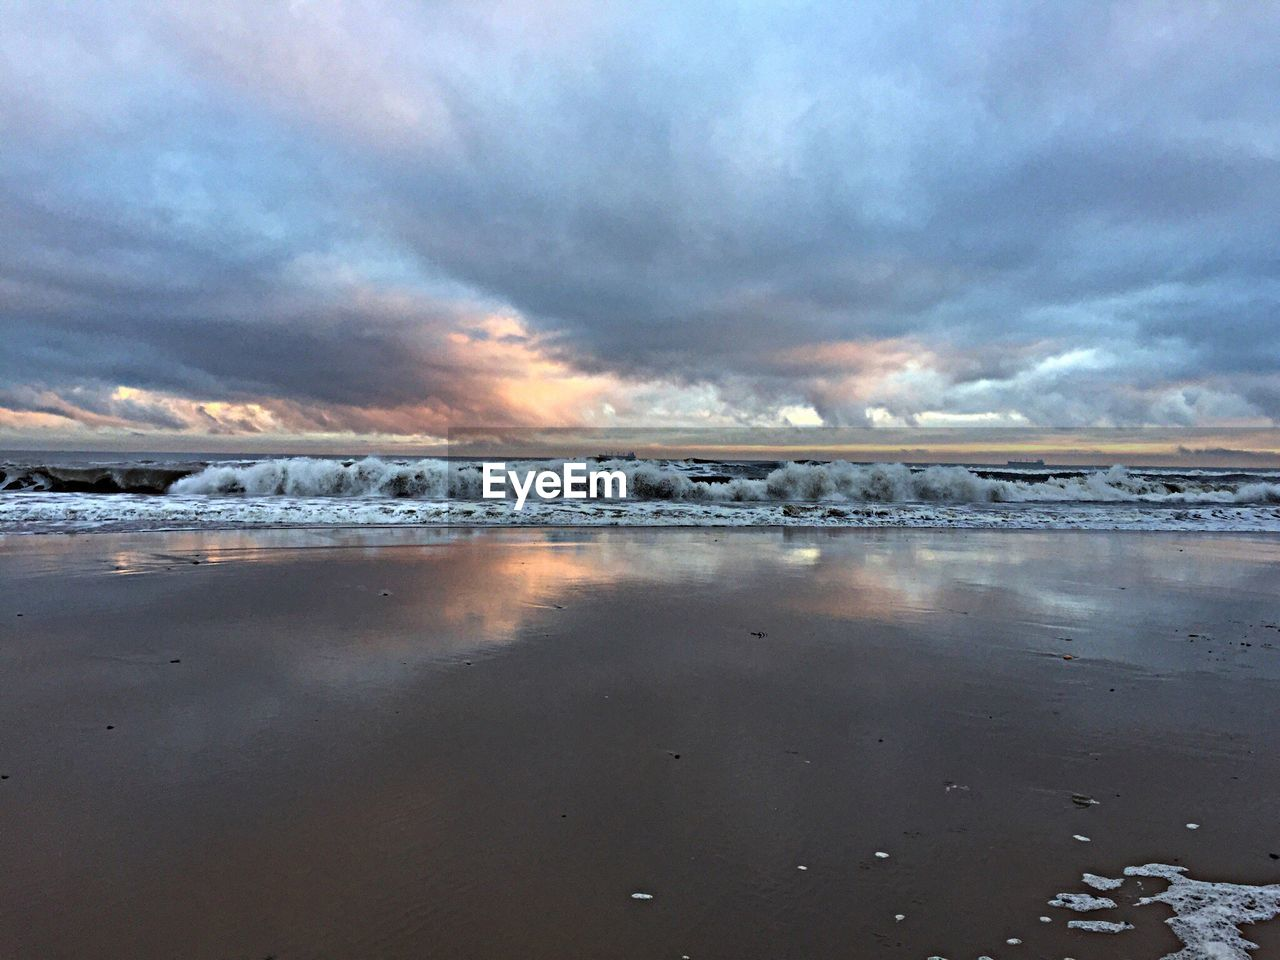 nature, sky, tranquility, beauty in nature, tranquil scene, scenics, cloud - sky, ice, outdoors, cold temperature, no people, beach, water, frozen, day, winter, sea, iceberg